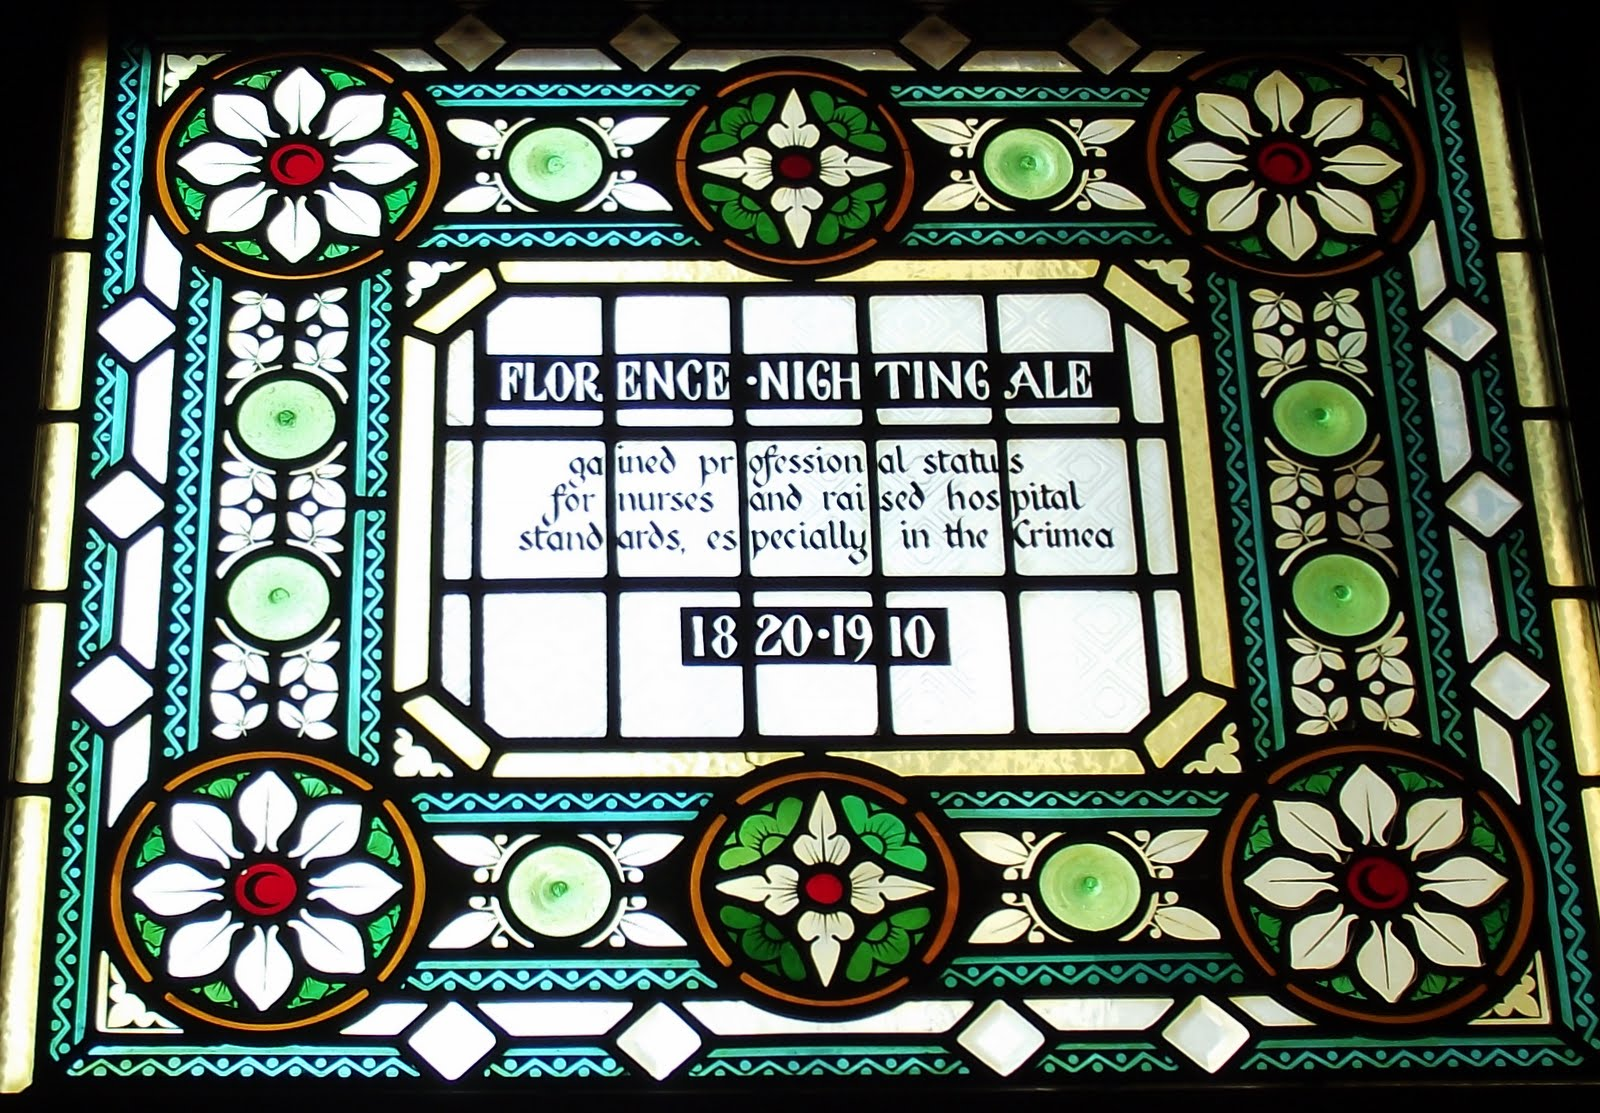 Florence Nightingale stained glass at the Champion pub